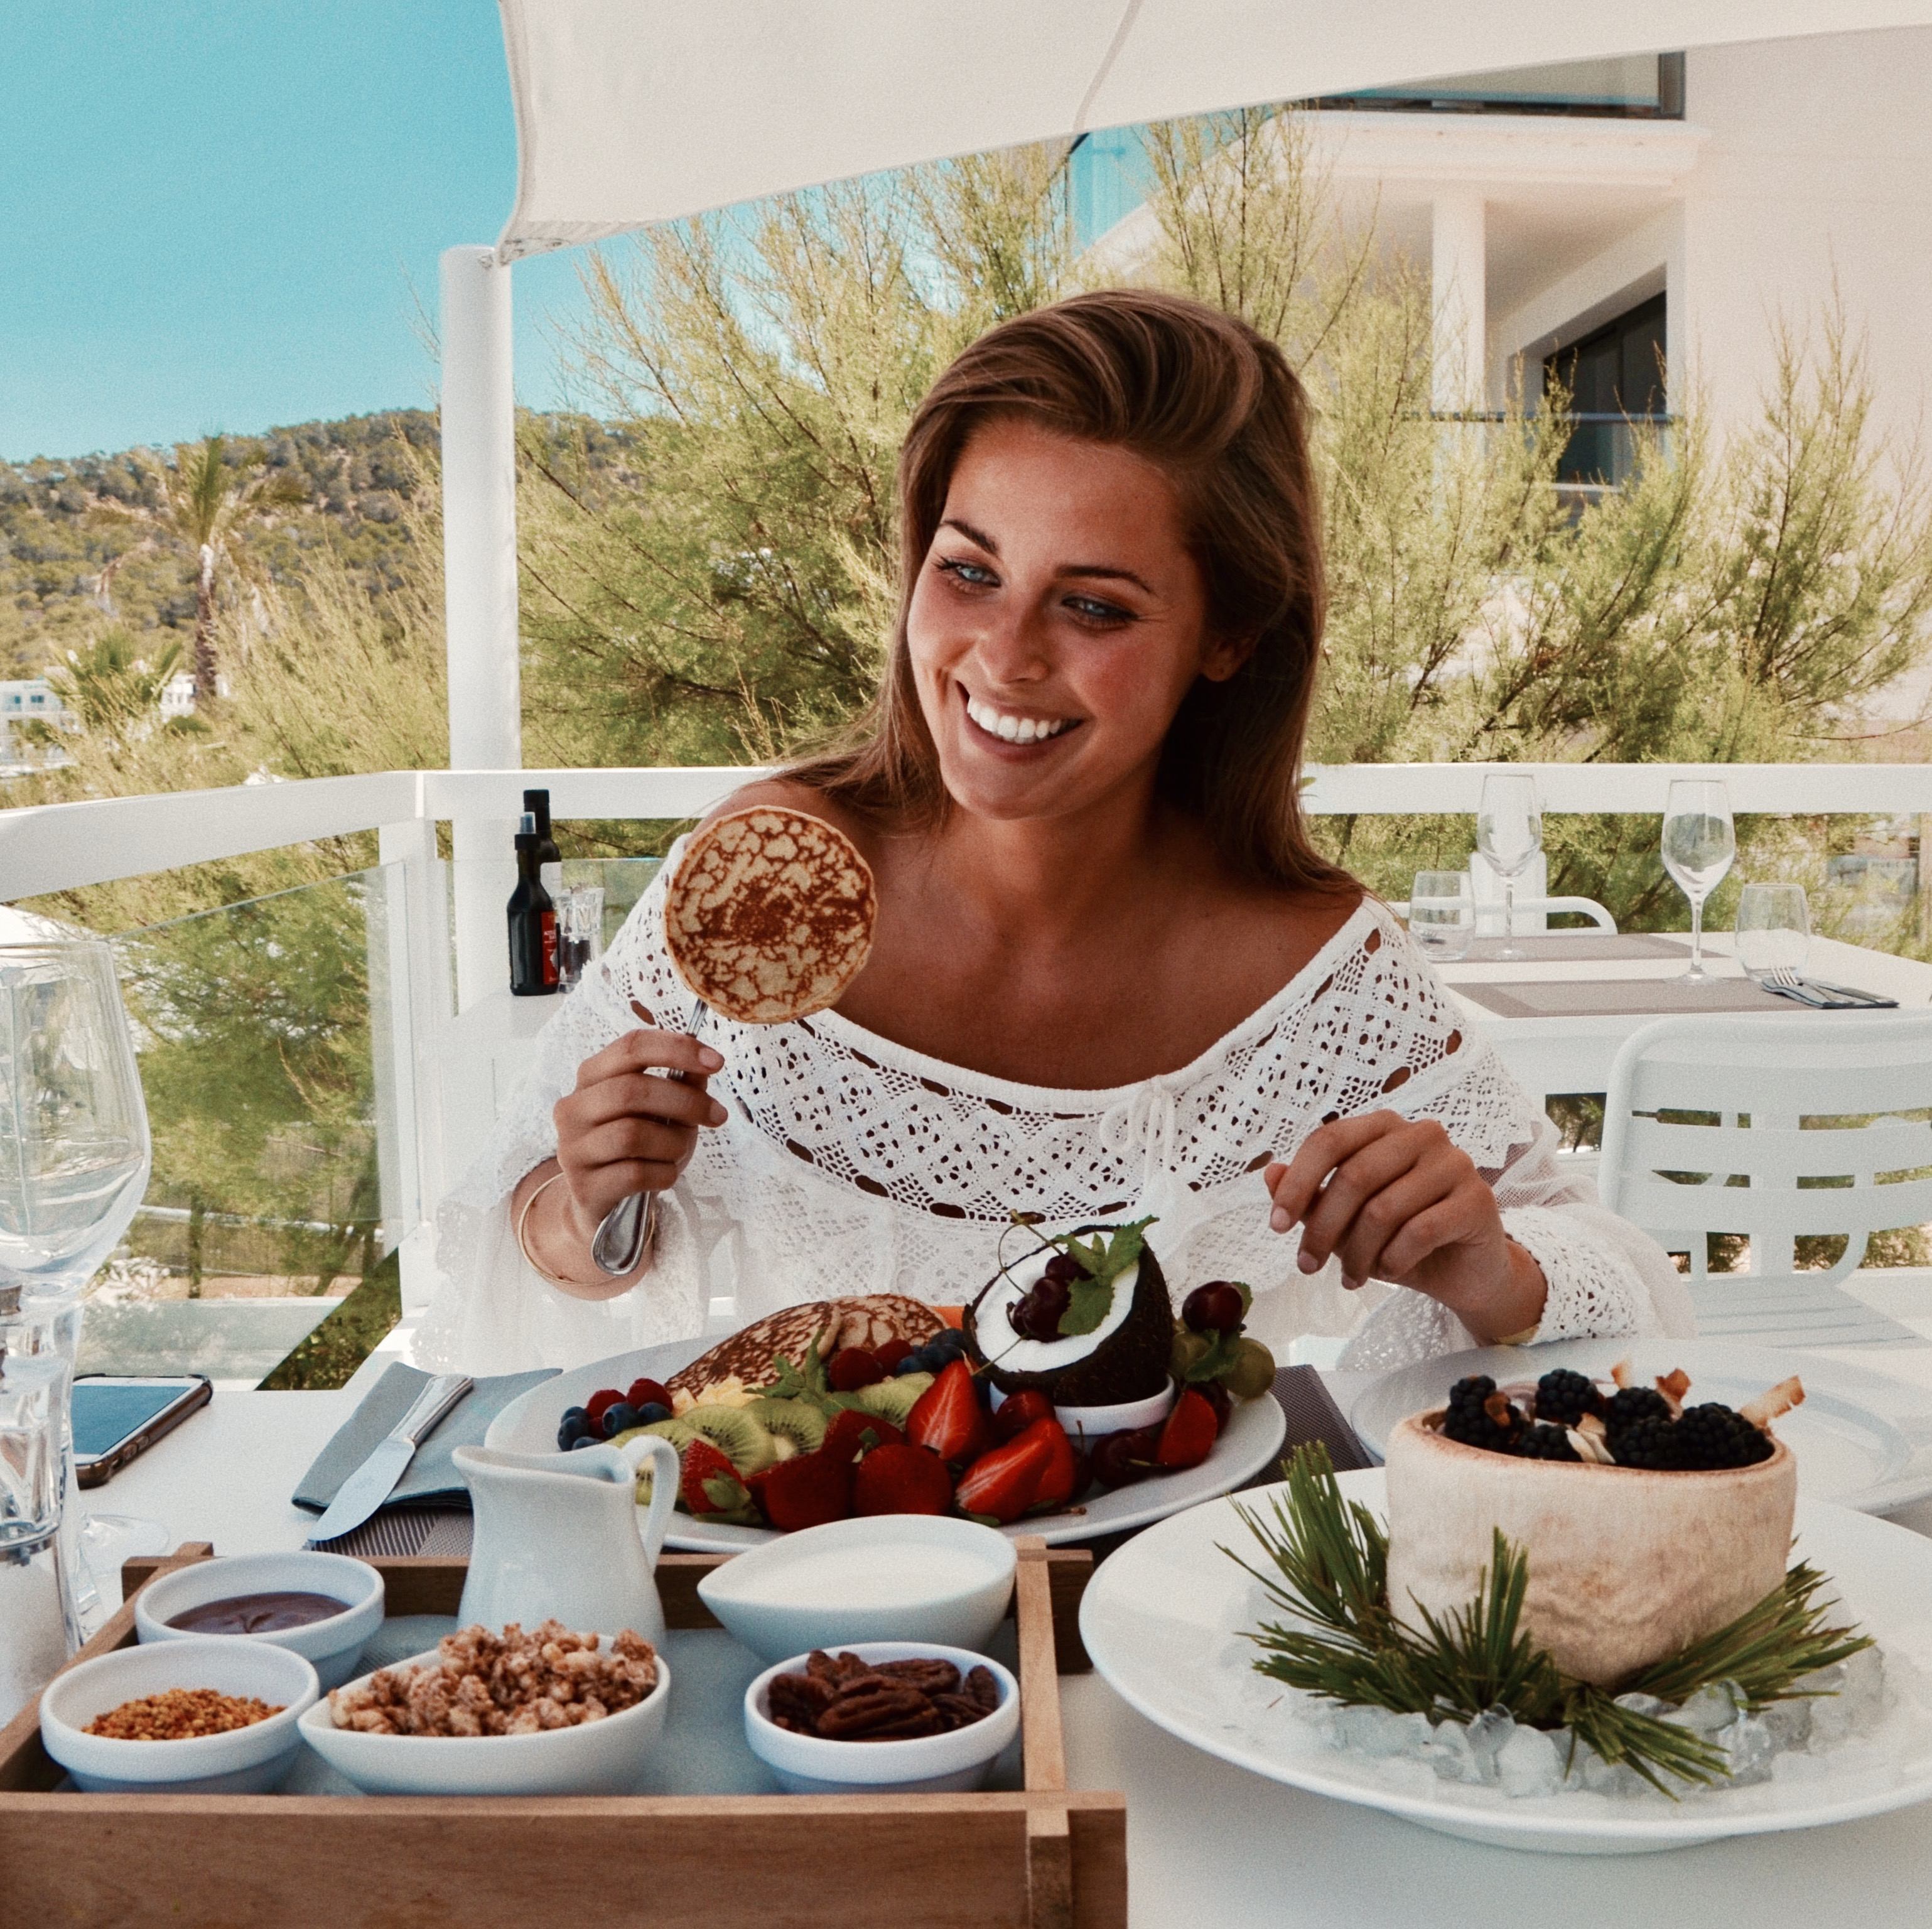 @murielle's cover photo for 'The Best Breakfast of Ibiza: Healthy and Delicious - MURIELLE'